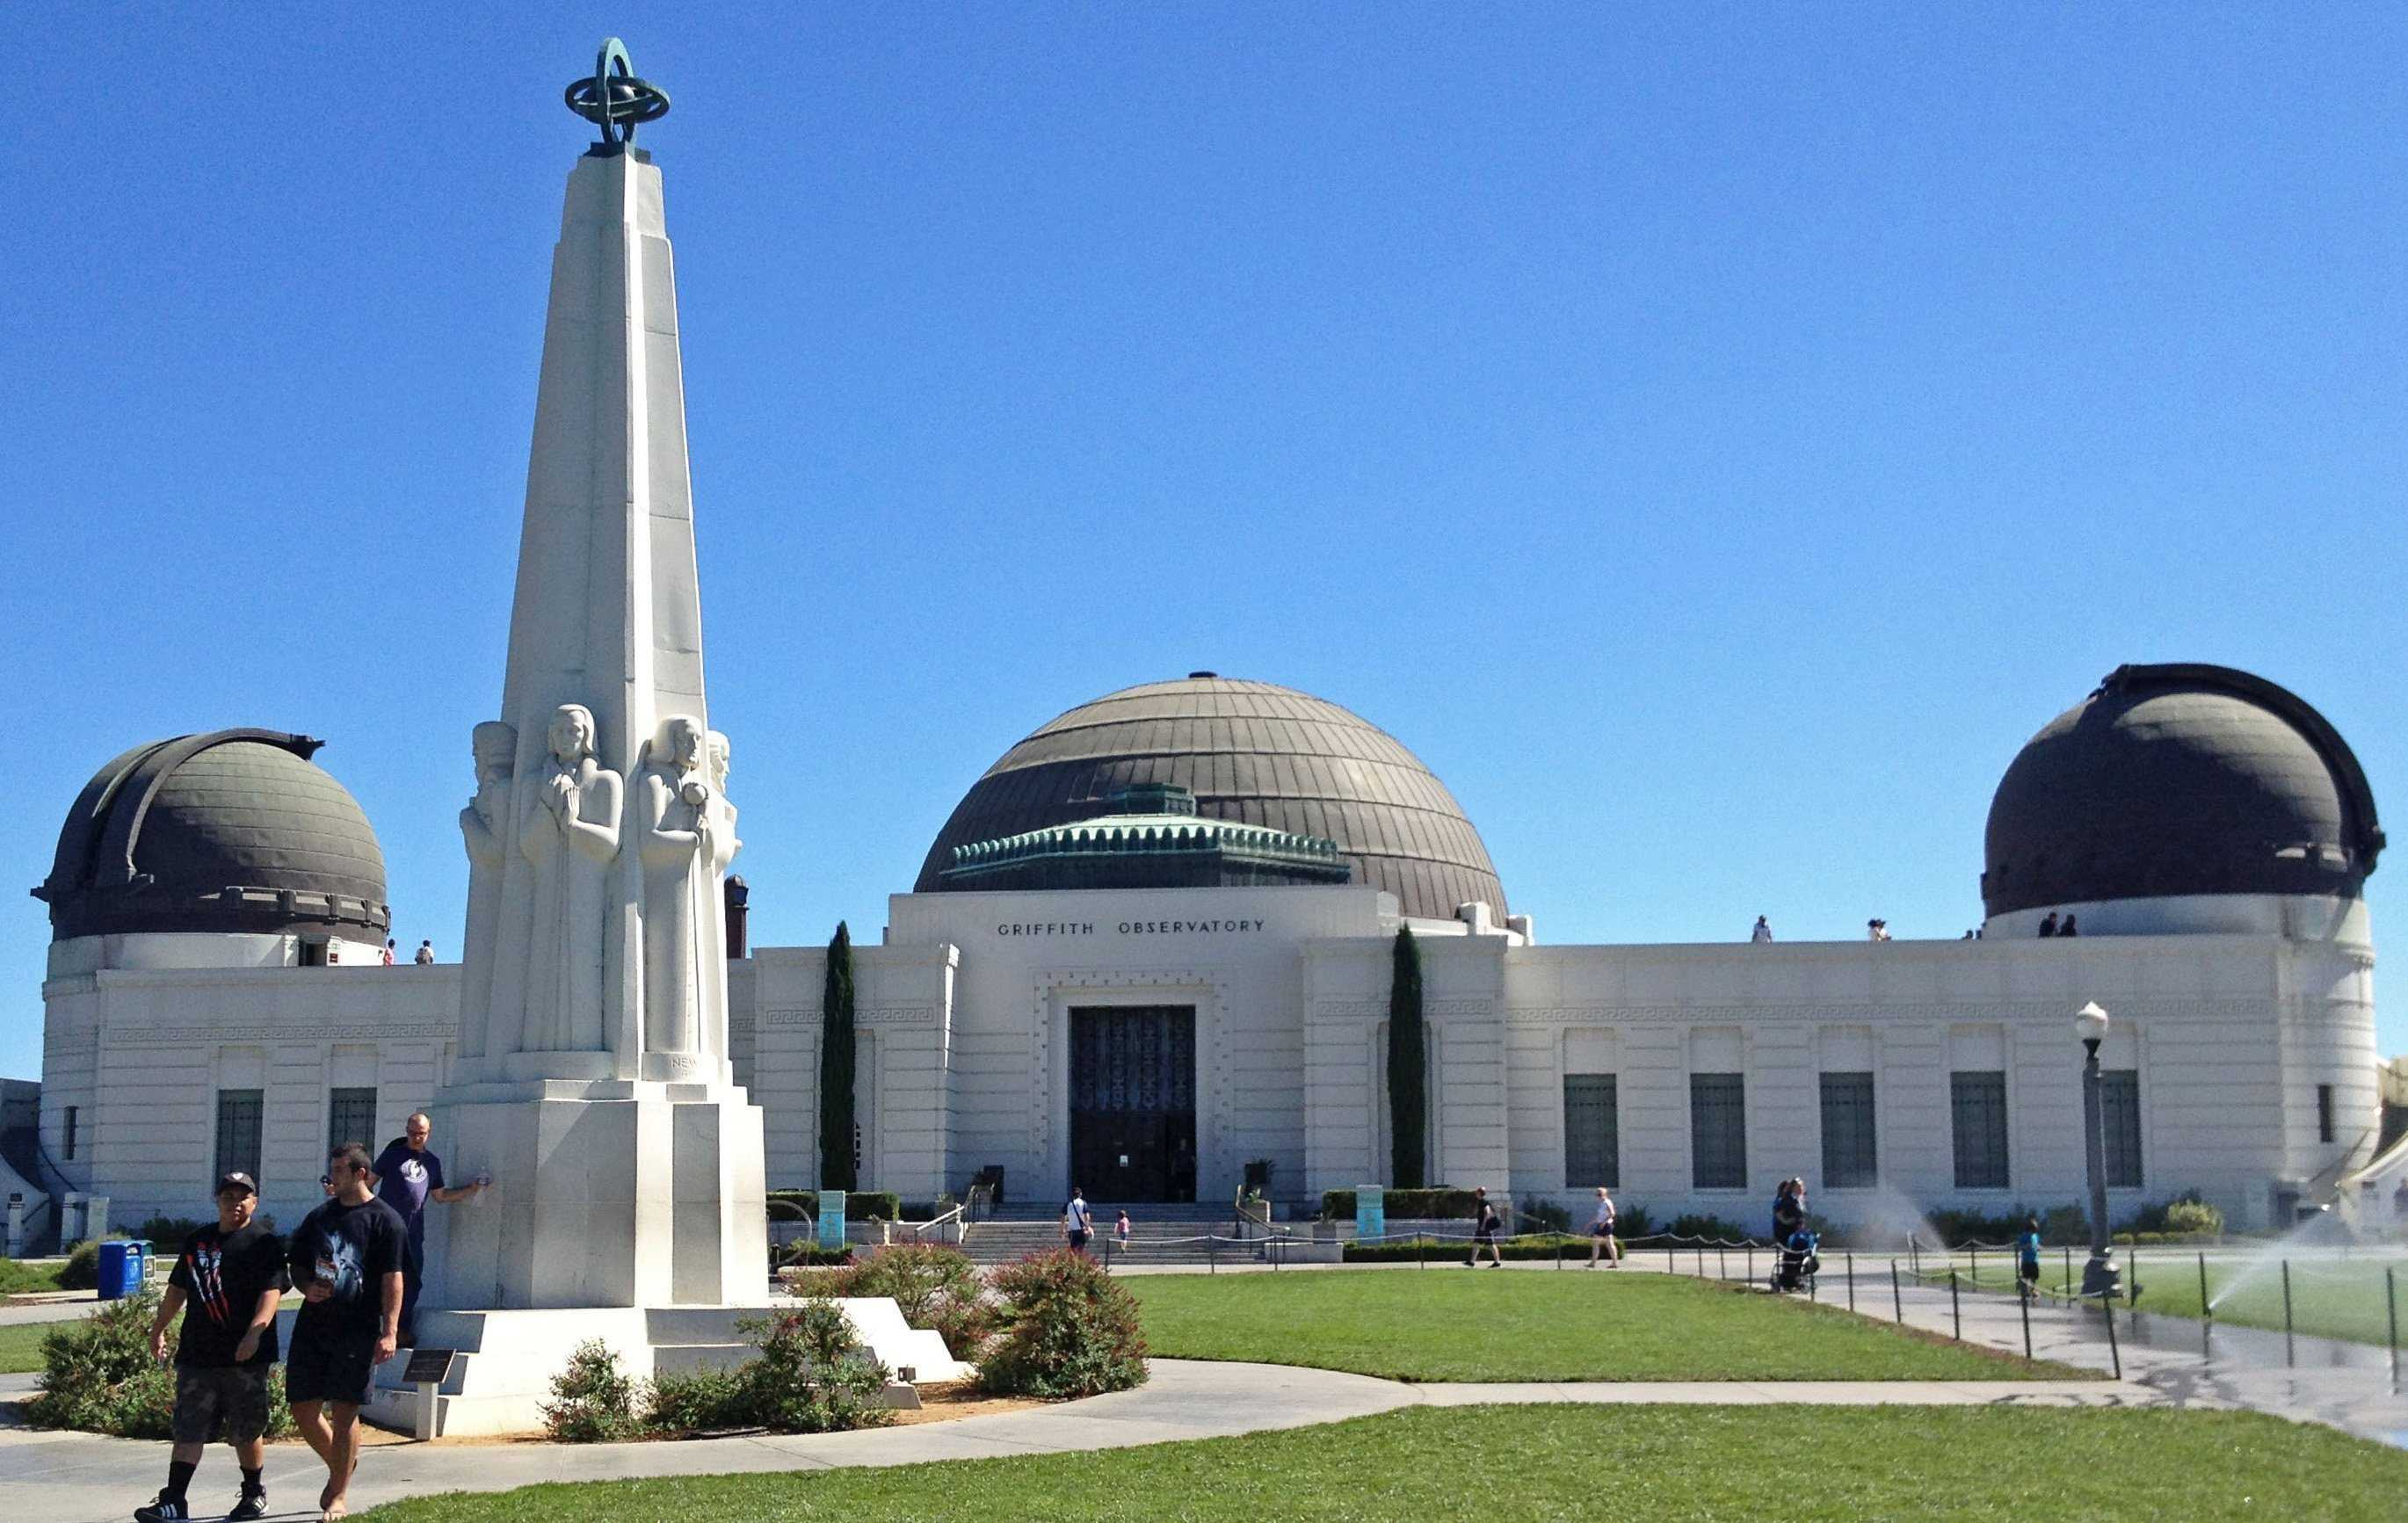 The+Griffith+Observatory+gives+the+public+free+access+to+the+study+of+the+skies.+%28Marjie+Lambert%2FMiami+Herald%2FMCT%29.+Photo+Courtesy+of+MCT.